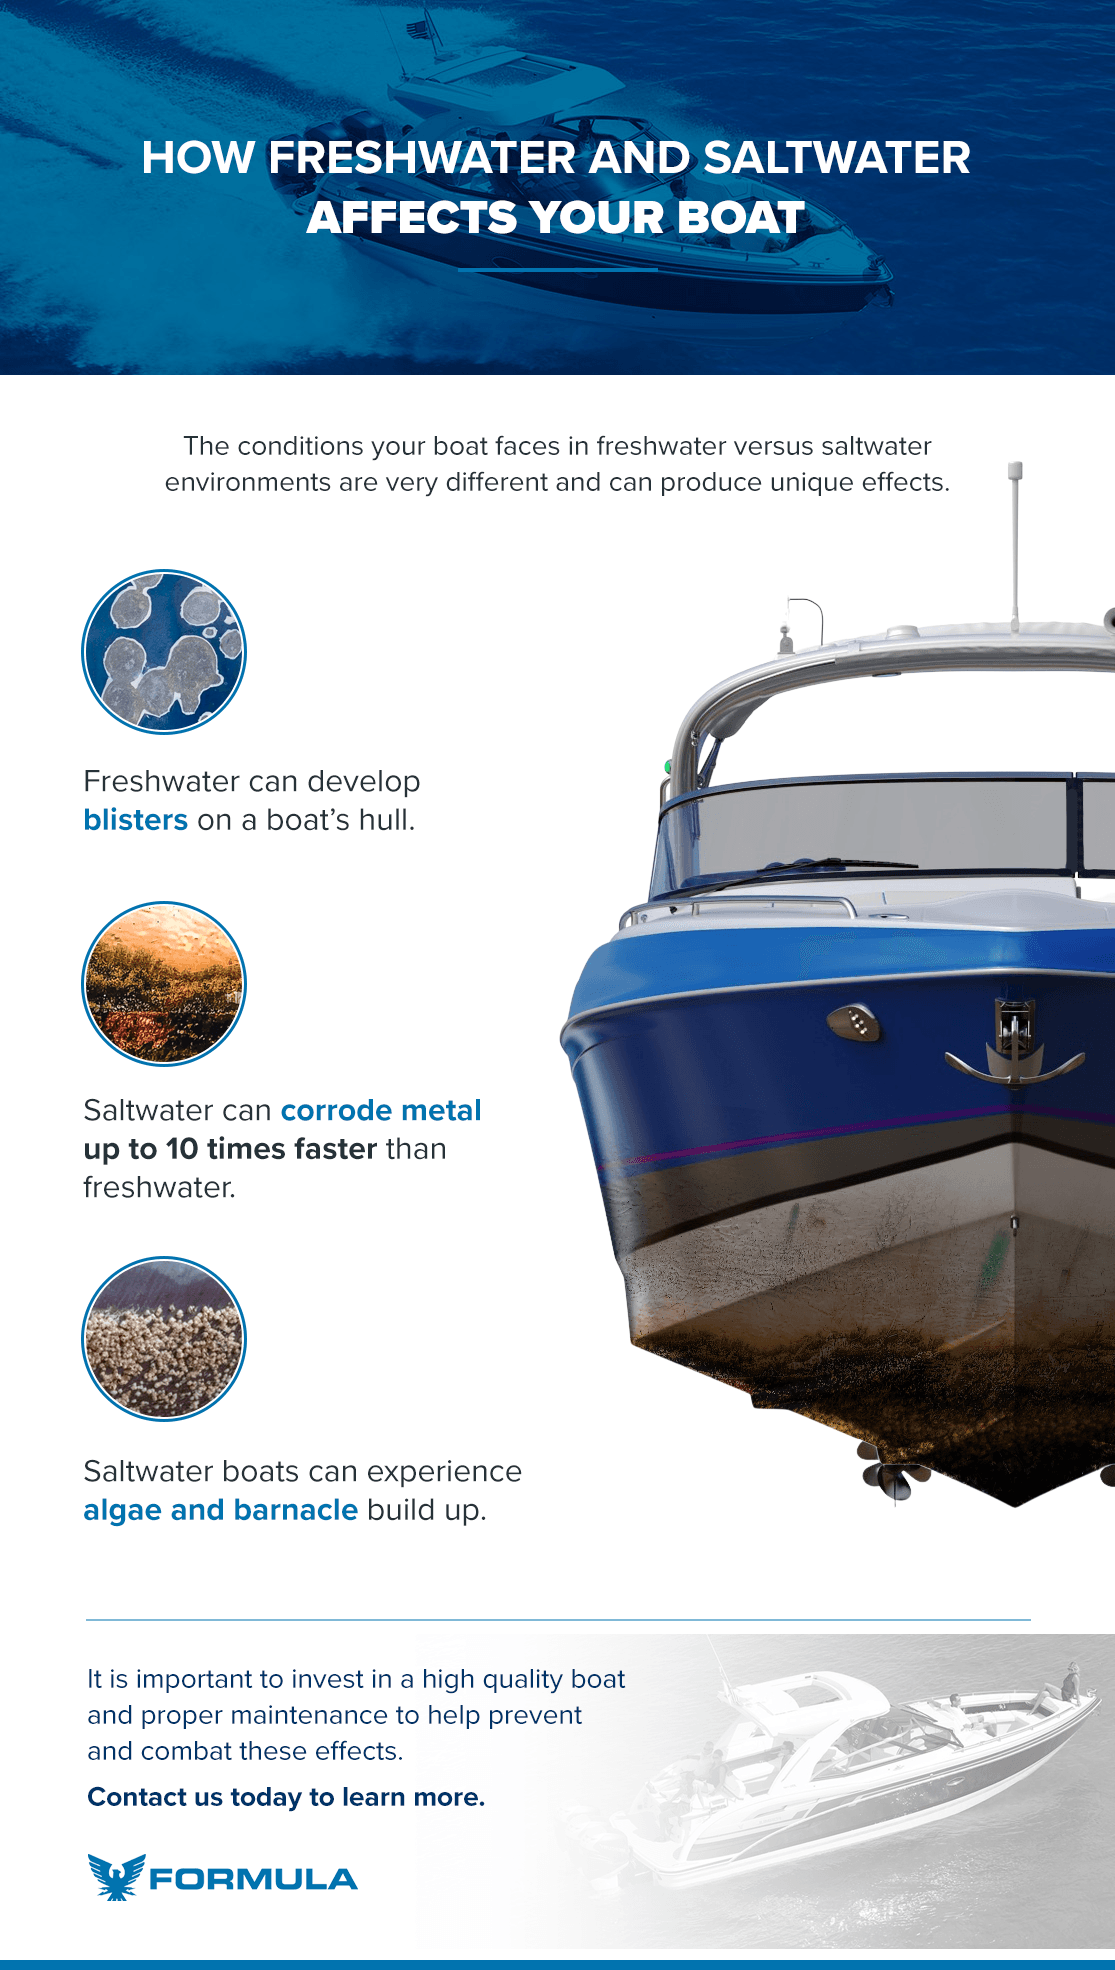 How Freshwater and Saltwater Affects Your Boat